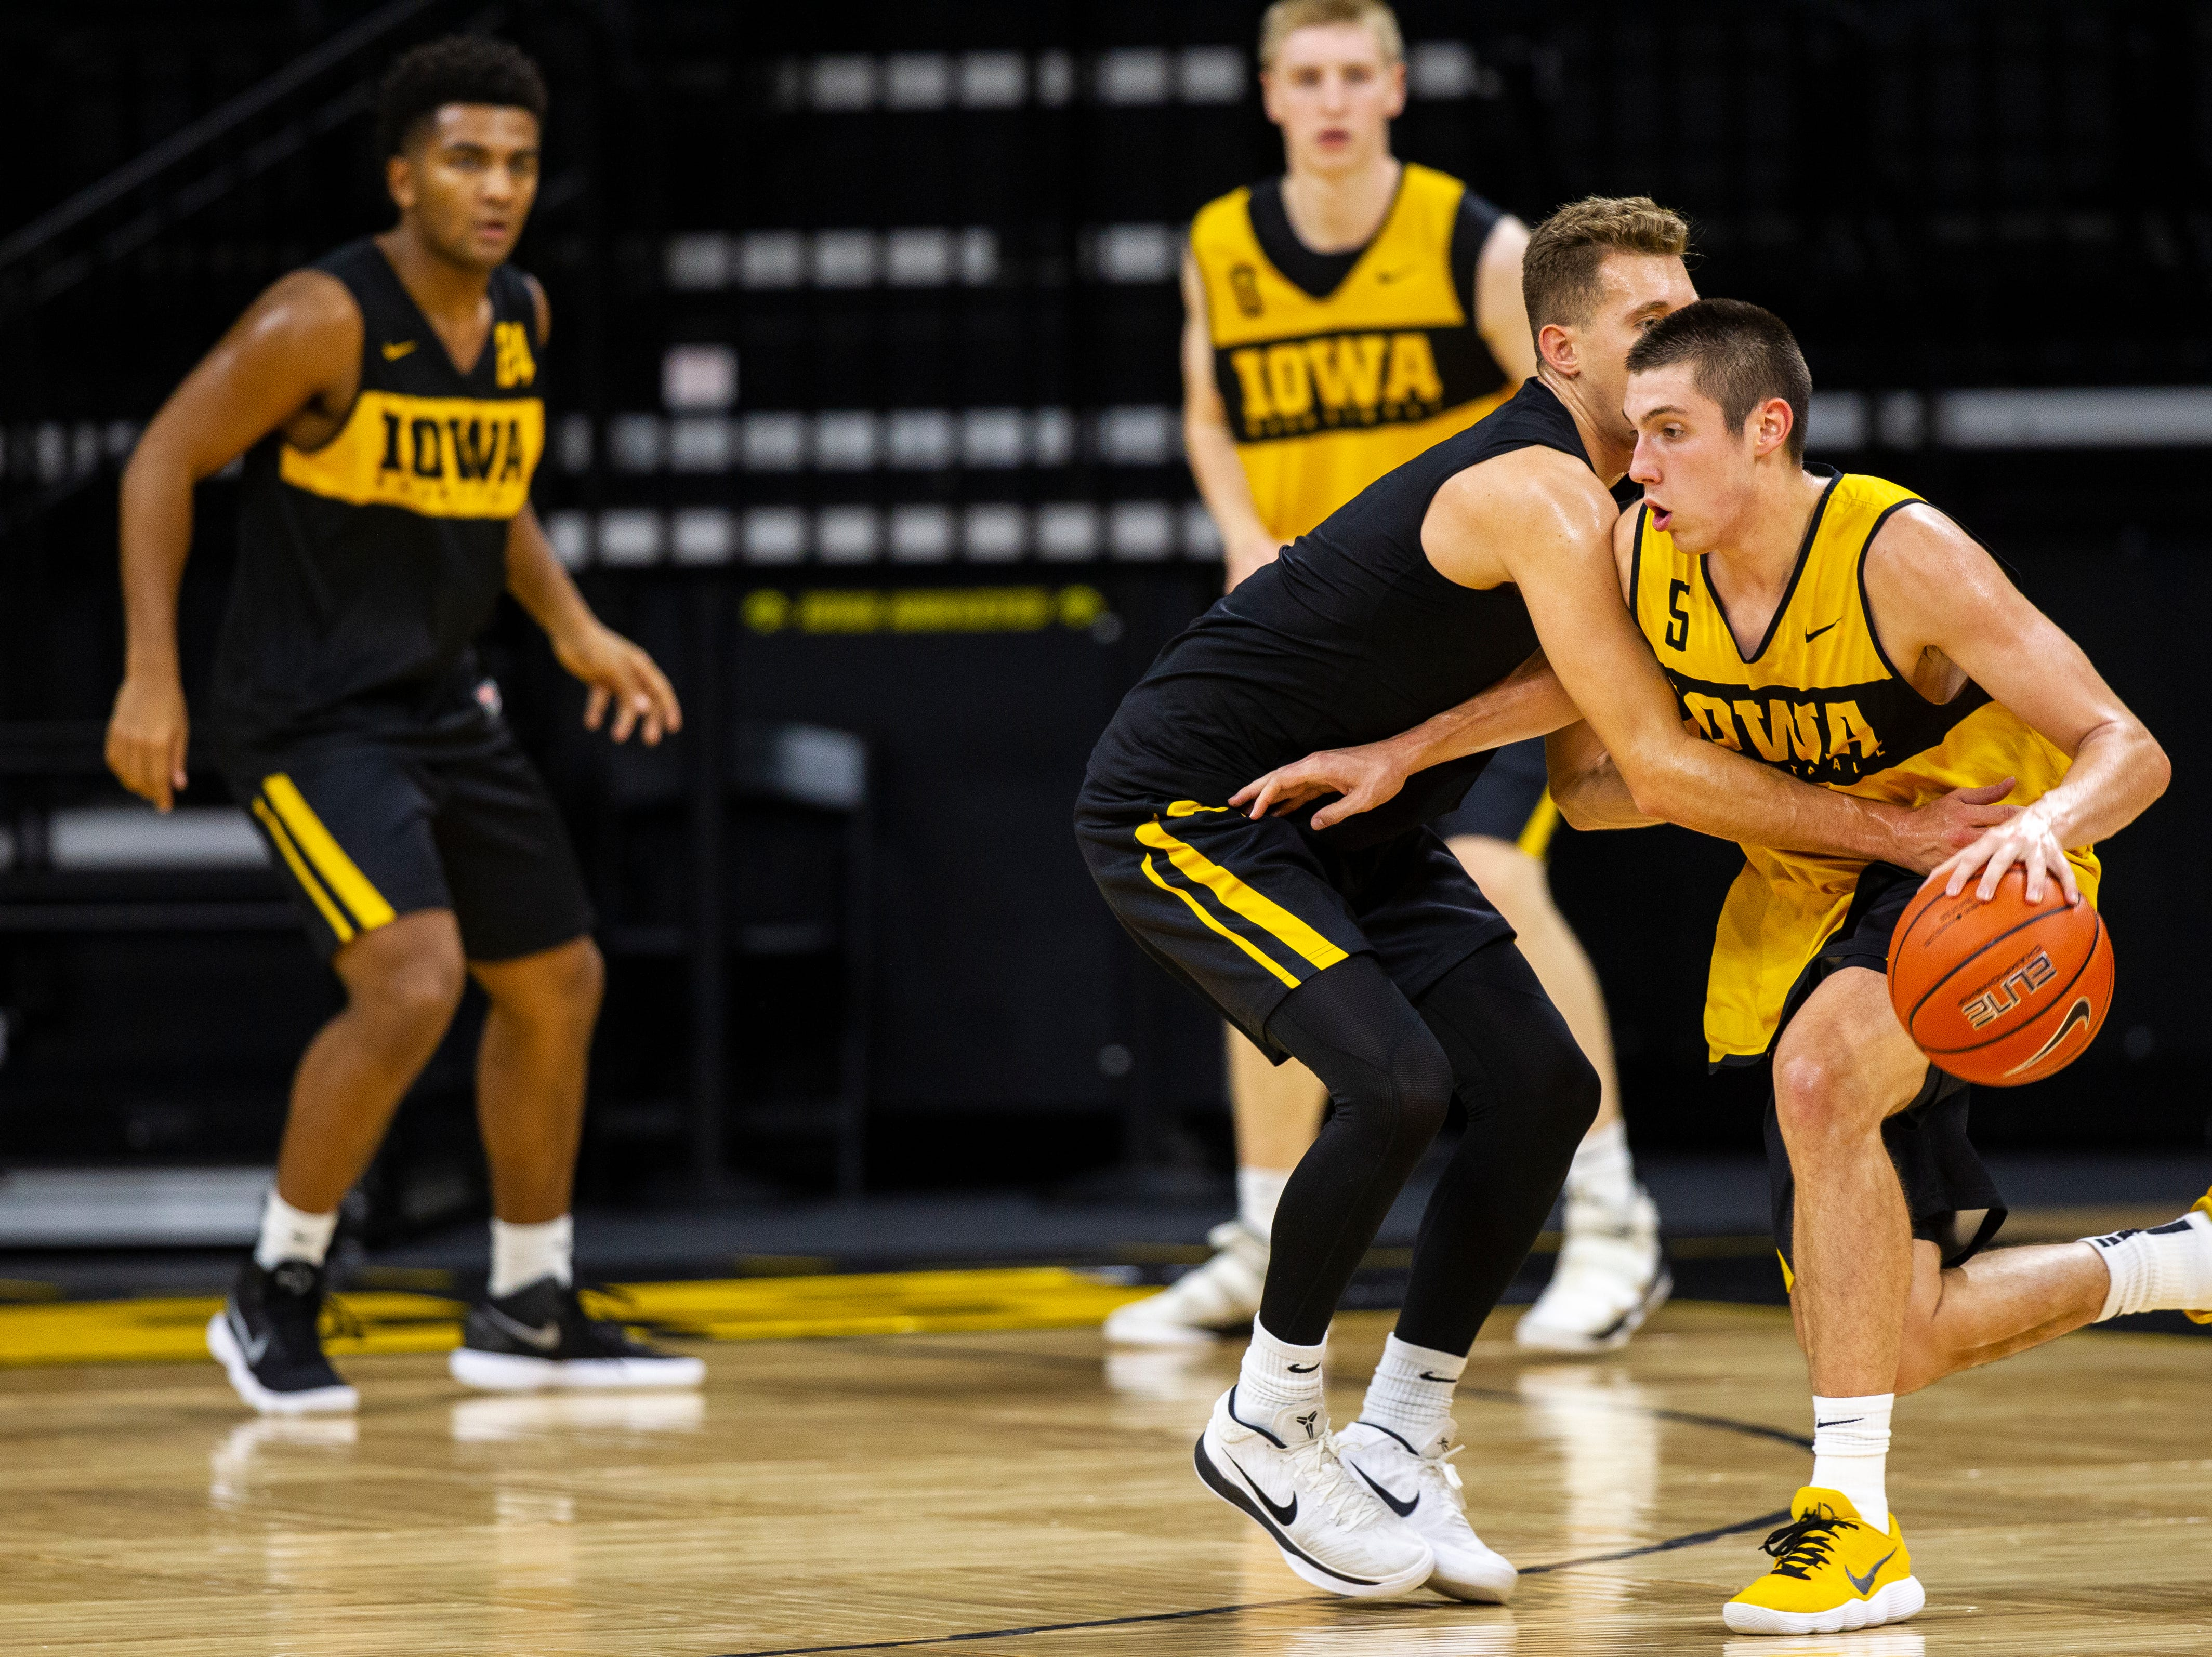 Iowa guard C.J. Fredrick (5) tries to get past Iowa guard Jordan Bohannon (3) during men's basketball practice following media day on Monday, Oct. 8, 2018, at Carver-Hawkeye Arena in Iowa City.